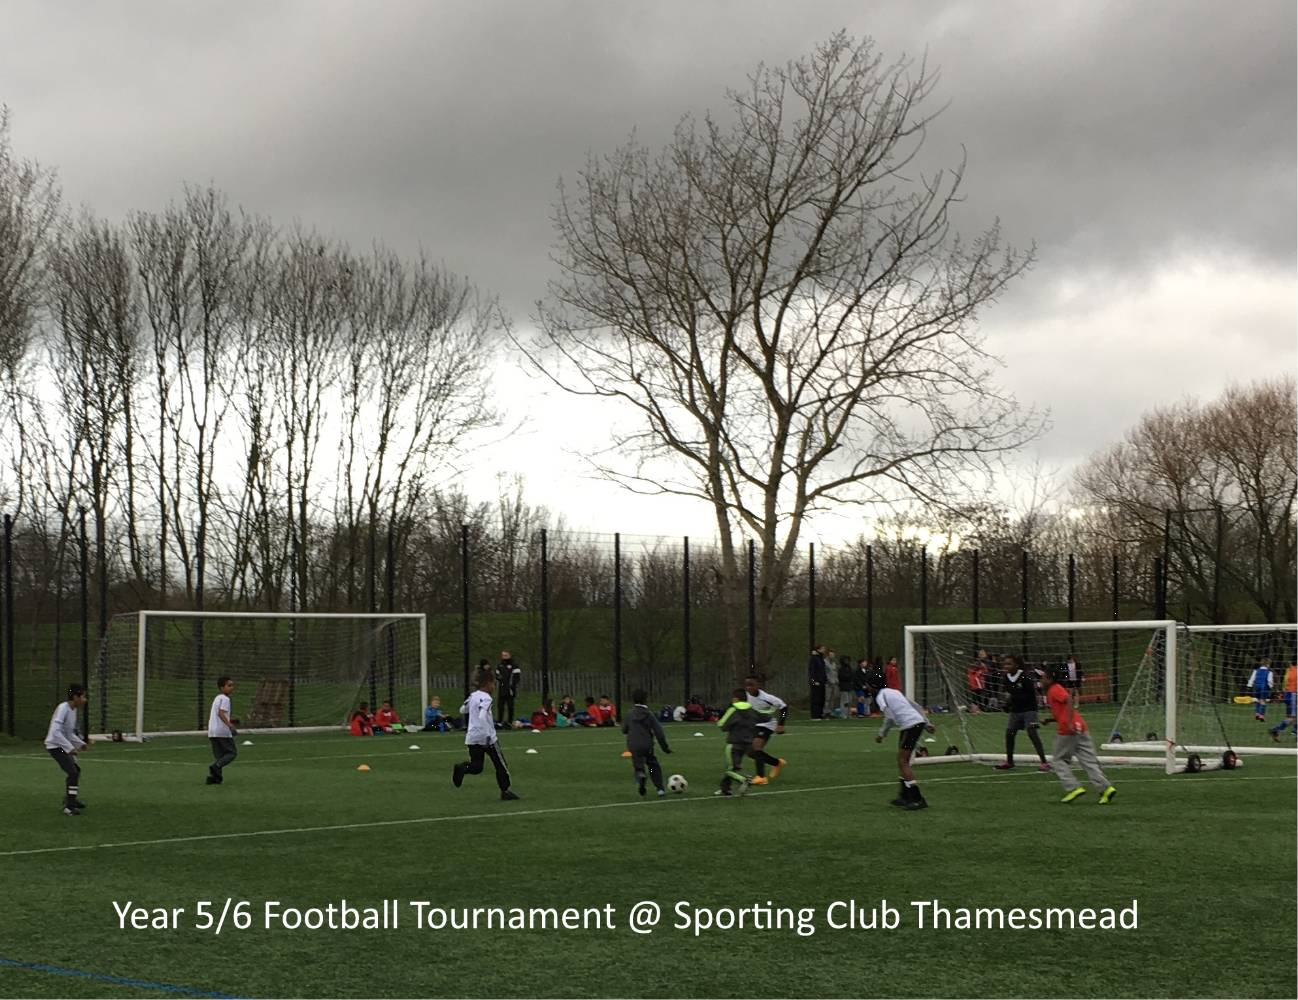 Football_Tournament_Sporting_Club